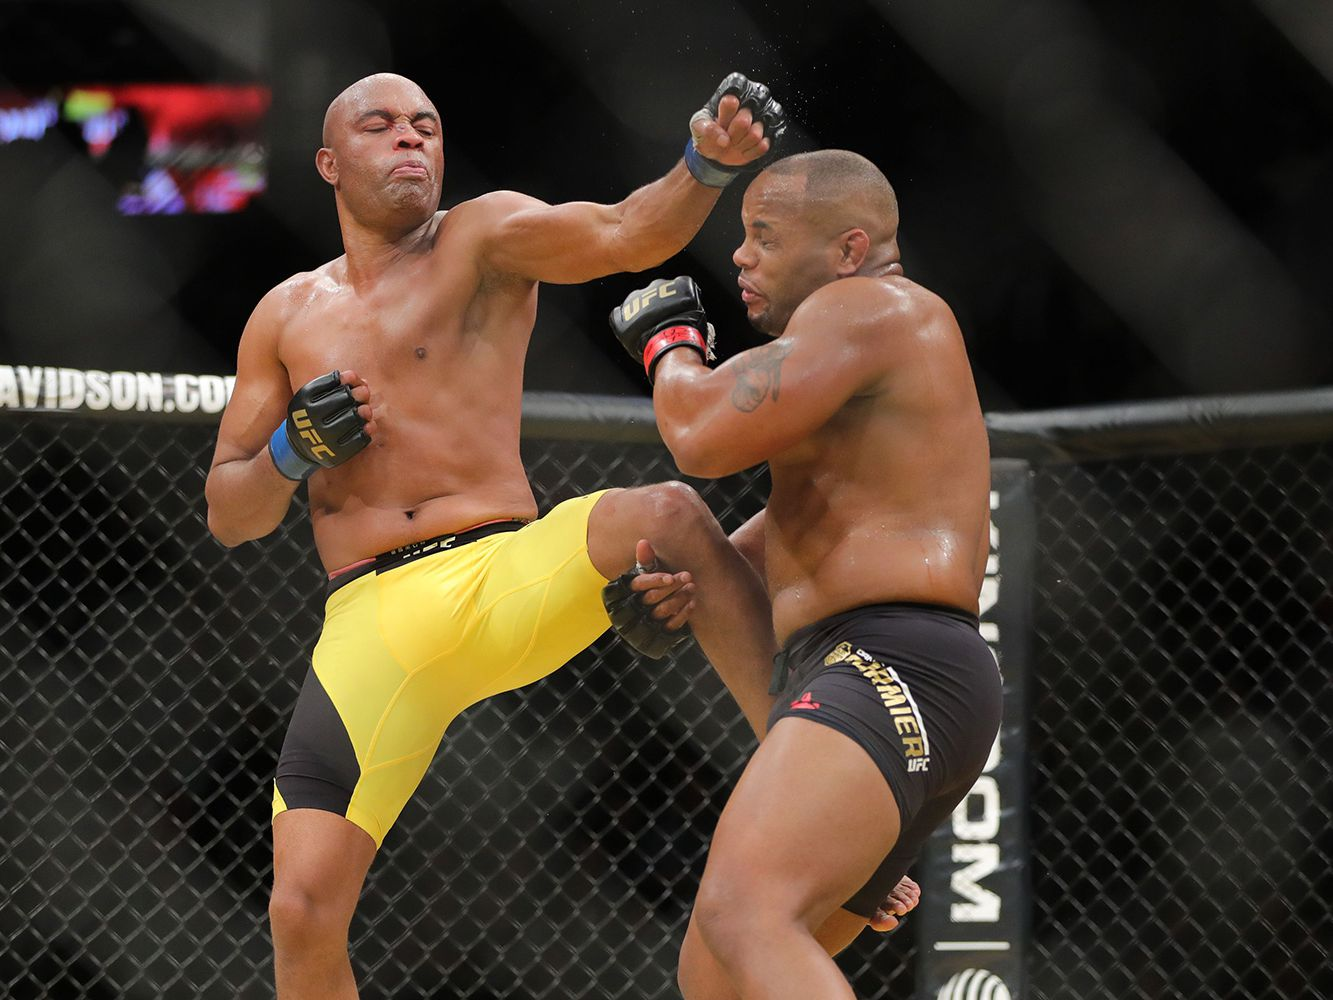 Meet the 15 Best MMA Fighters of All Time